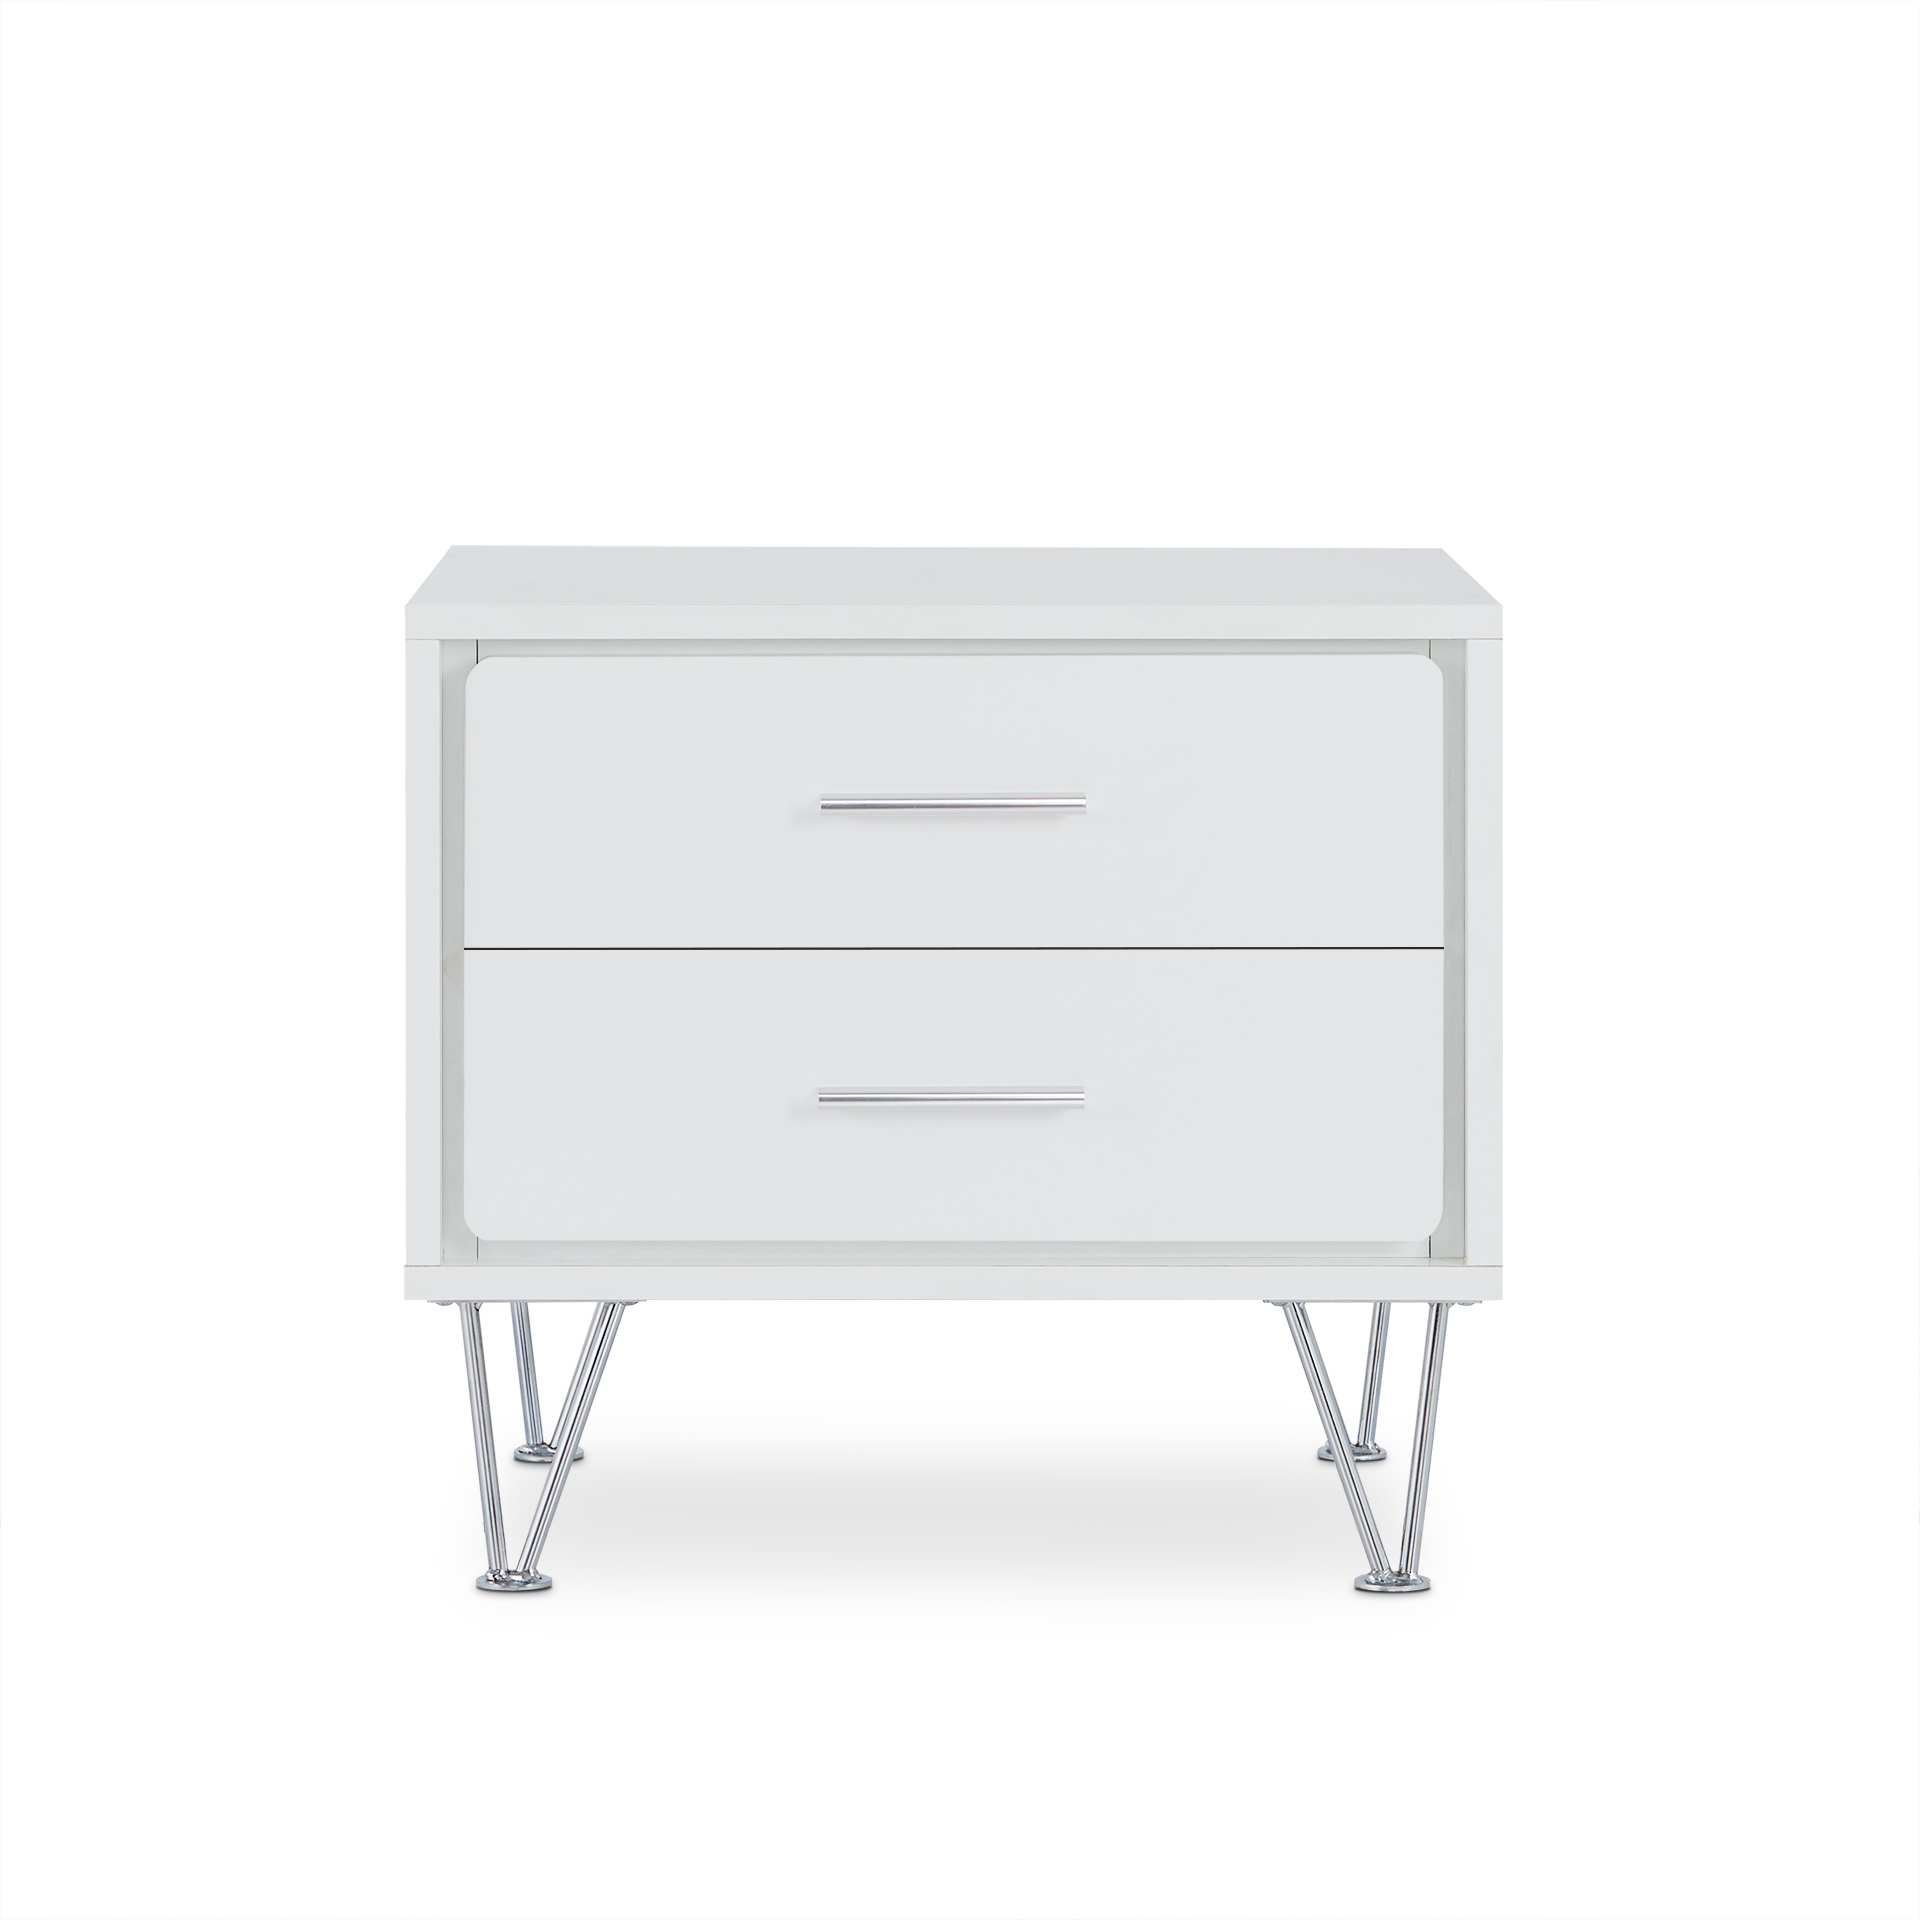 """19.69"""" X 15.75"""" X 17.93"""" White Particle Board Nightstand"""